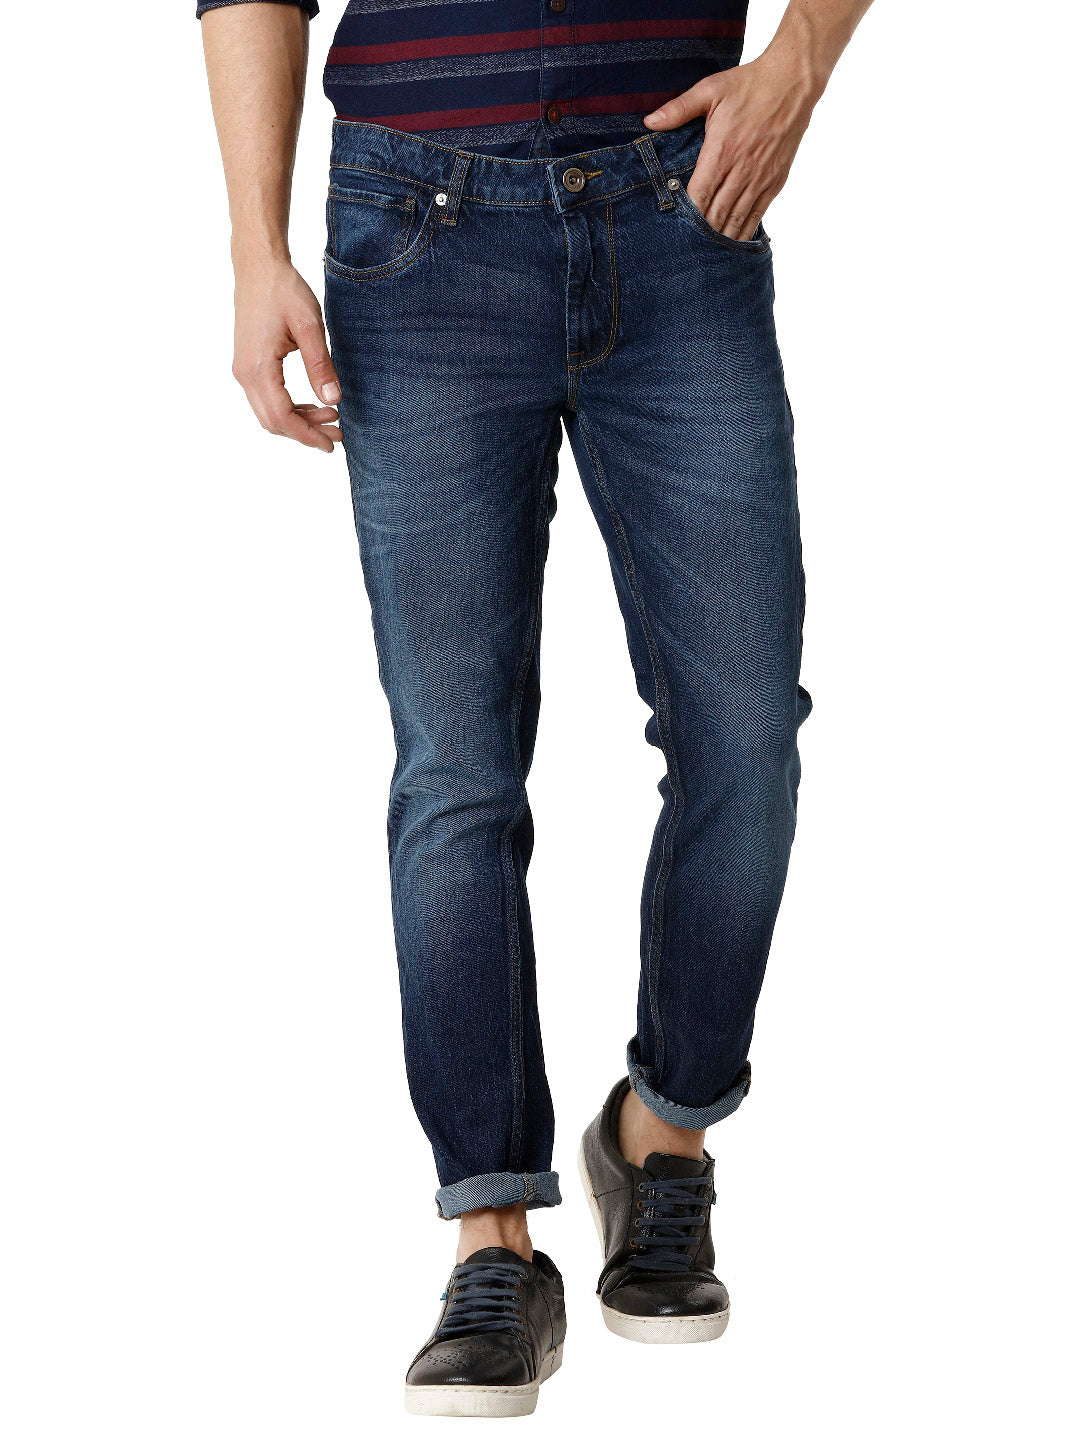 Twilled Dark Indigo Stonewashed Men's Denim - Jeans Pant